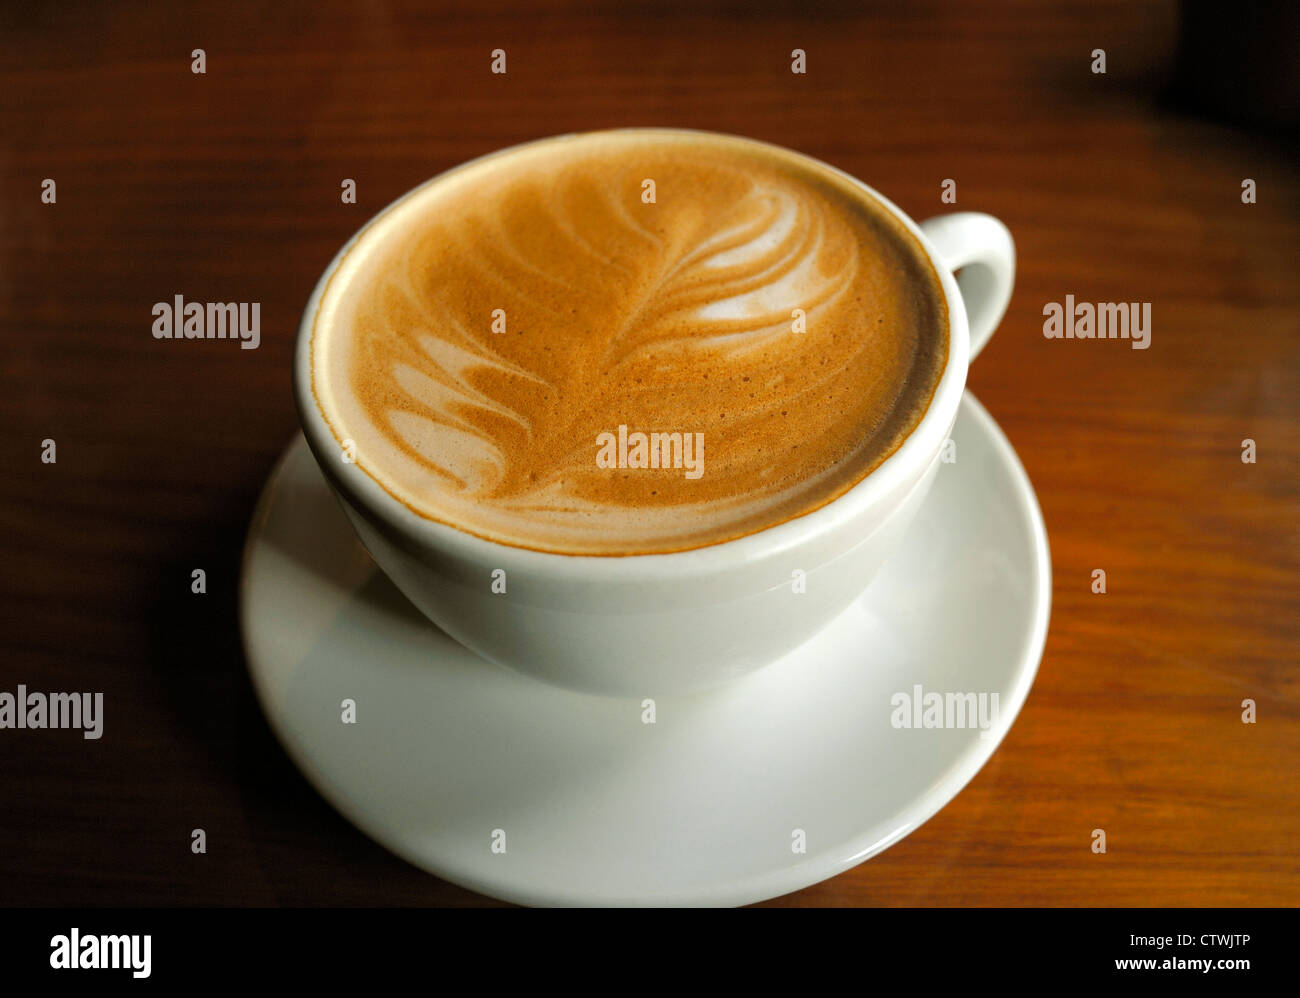 A CUP OF COFFEE , KNOWN IN NEW ZEALAND AS A ' FLAT WHITE '  COMPLETE WITH DESIGN IN THE FROTH COFFEE CUP - Stock Image